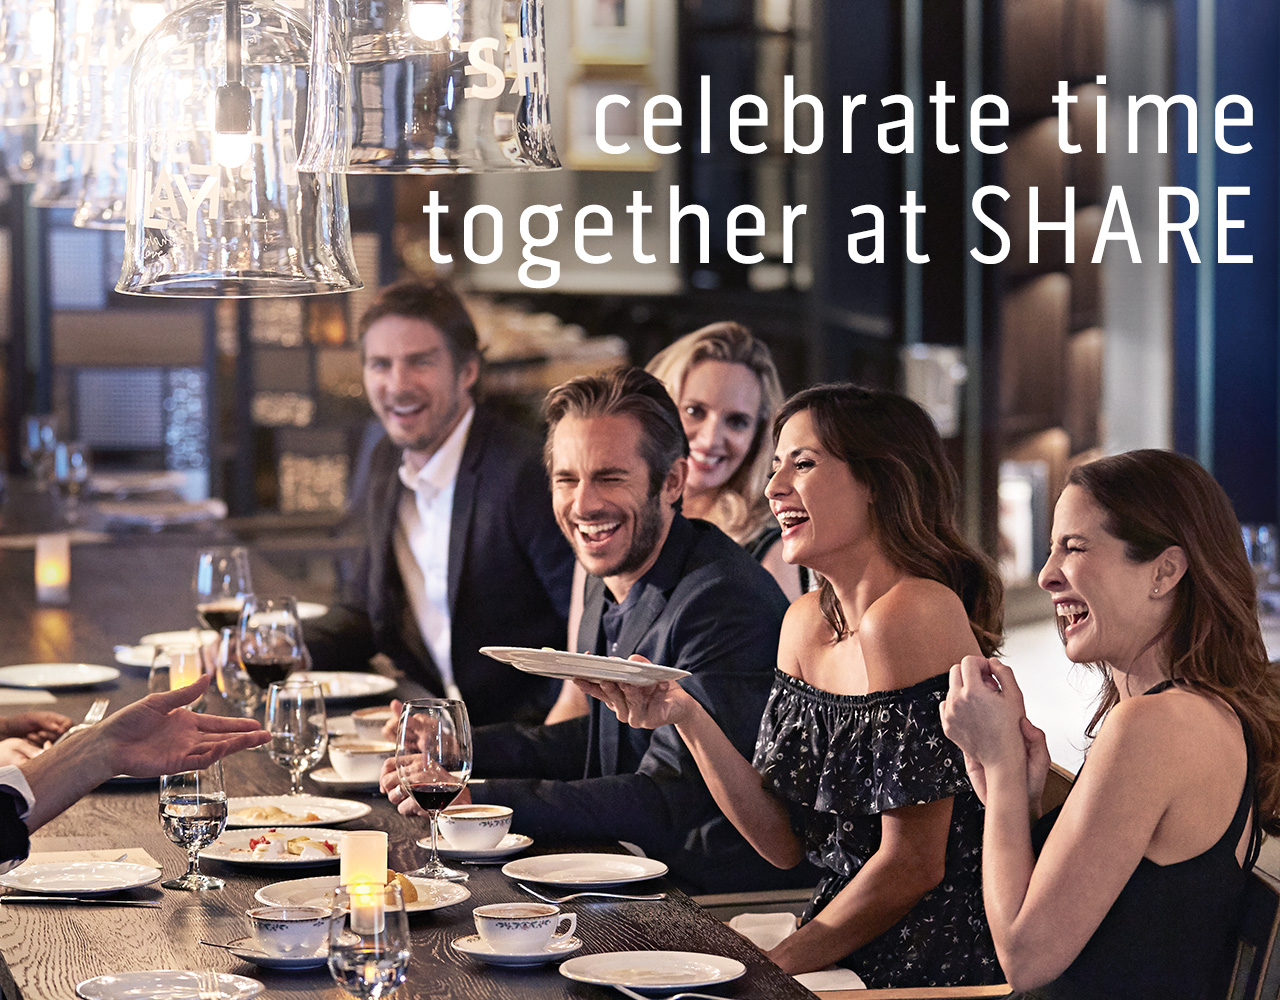 celebrate time together at SHARE